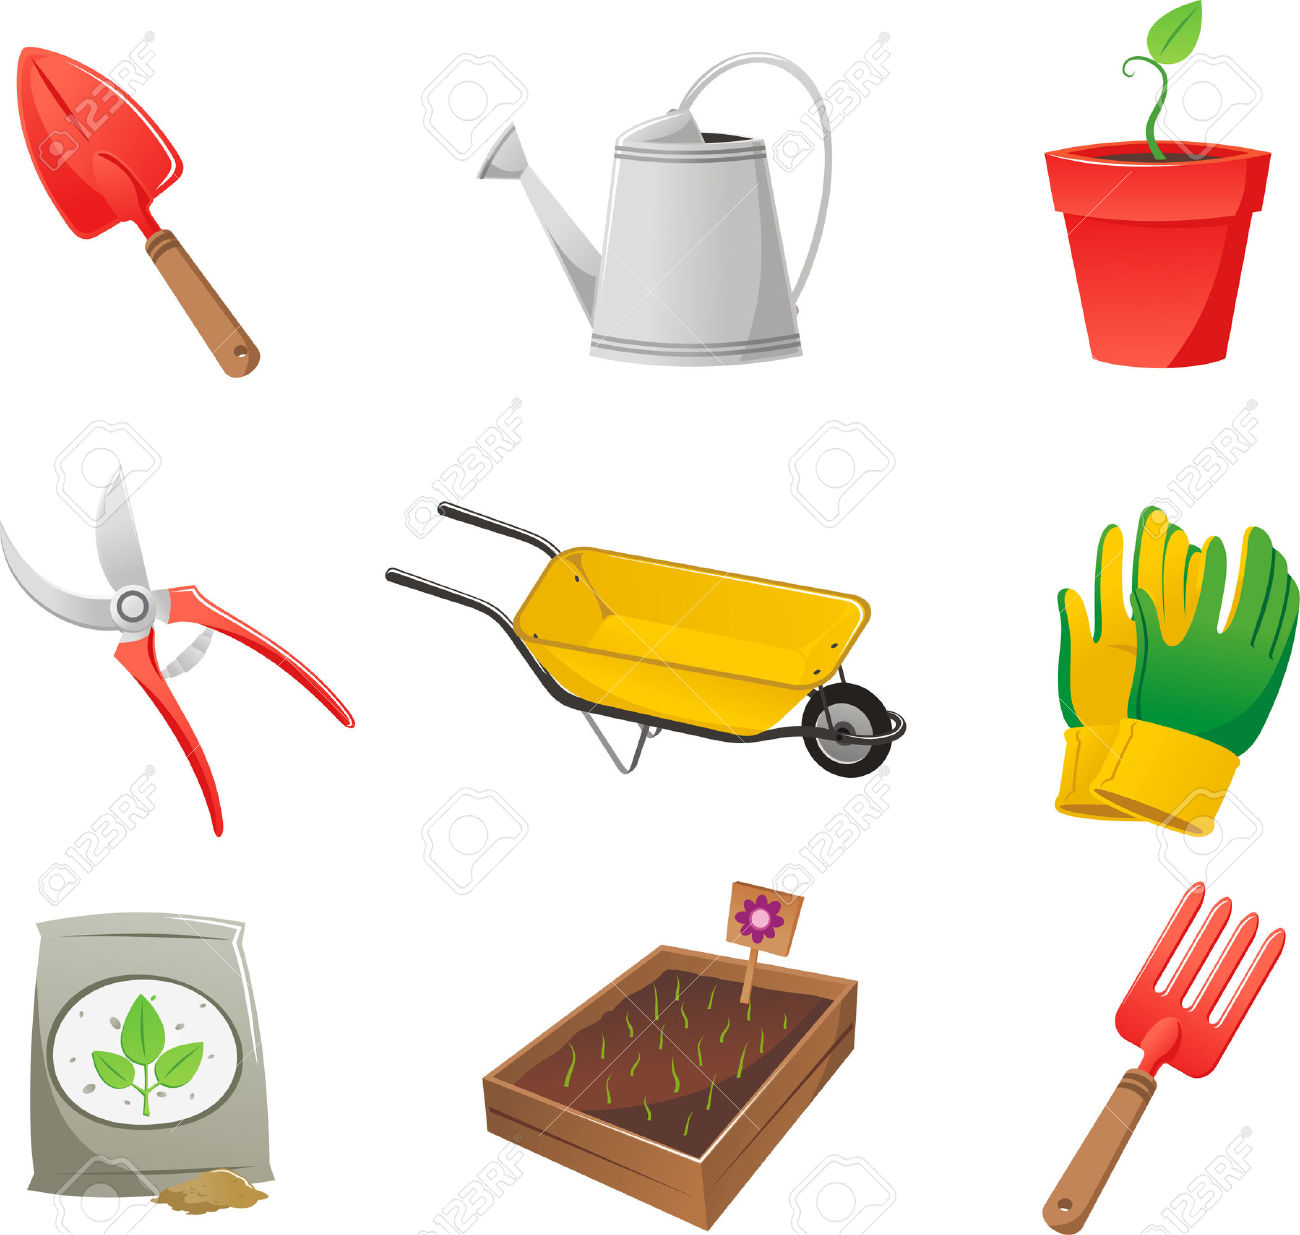 Dung Fork Stock Photos & Pictures. Royalty Free Dung Fork Images.